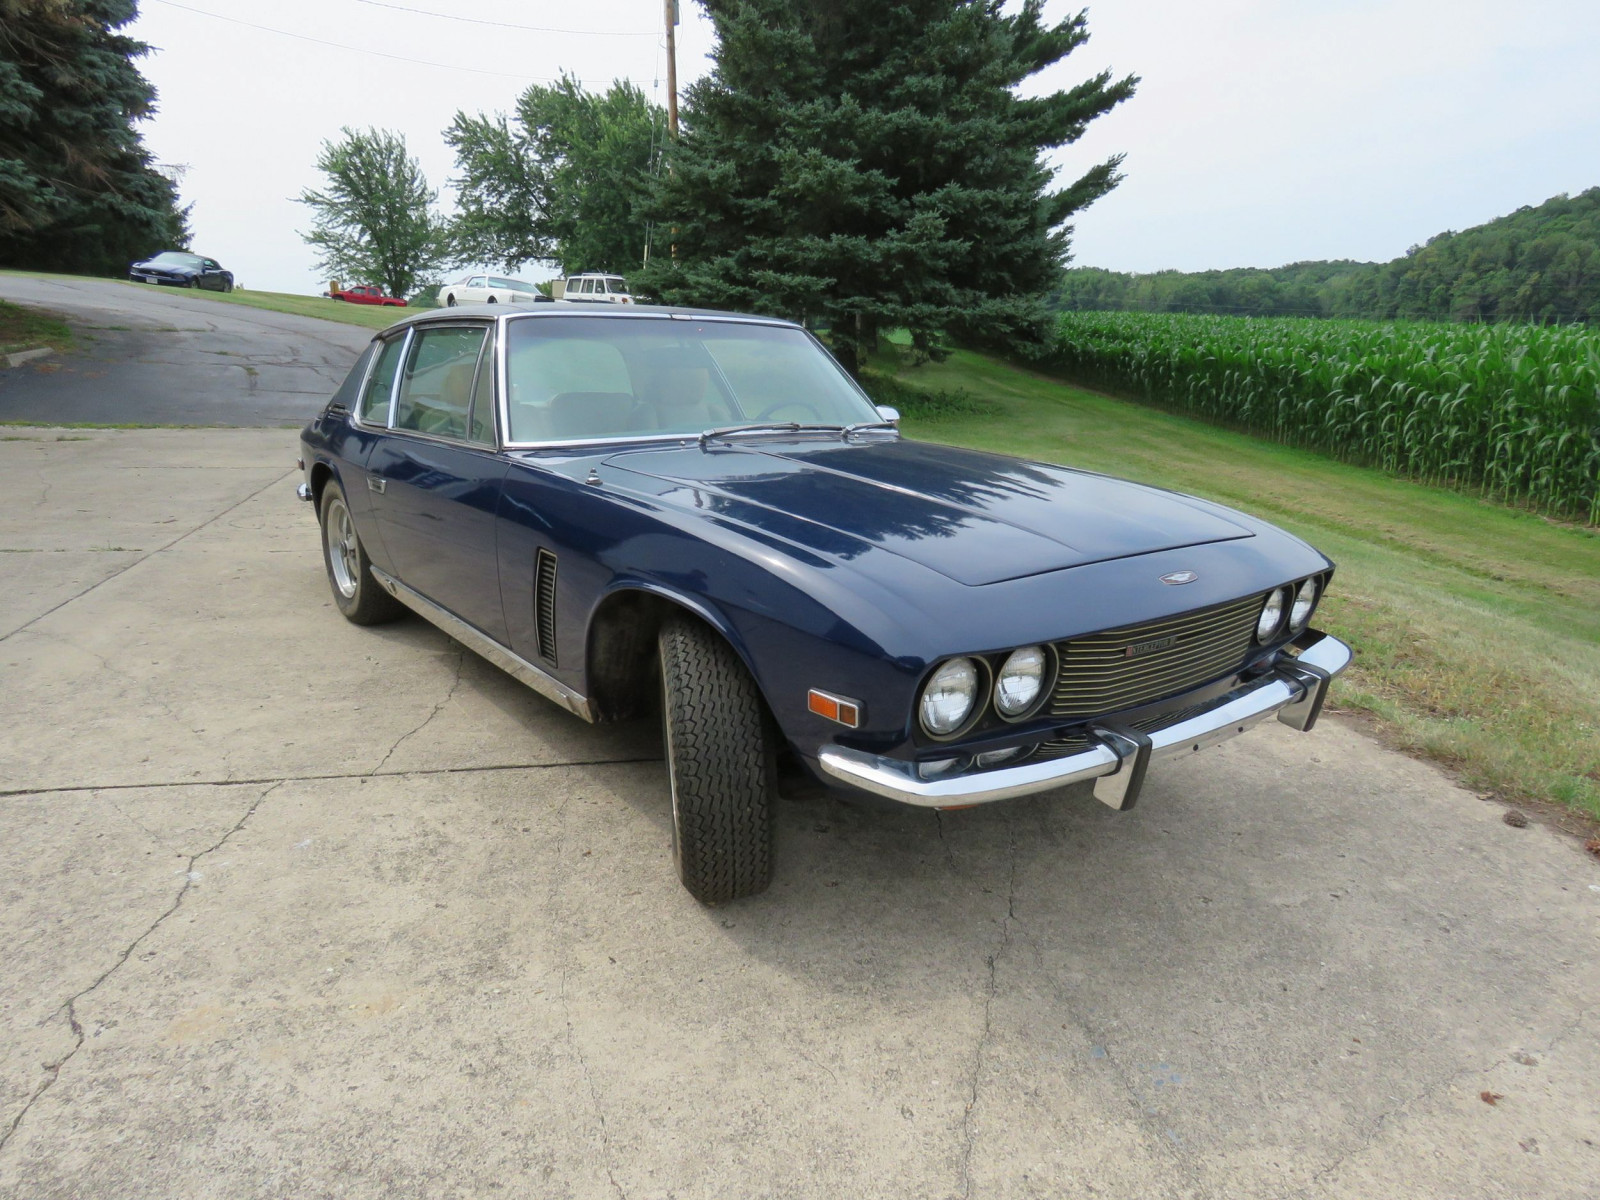 1973 Jensen Interceptor III Coupe - Image 1